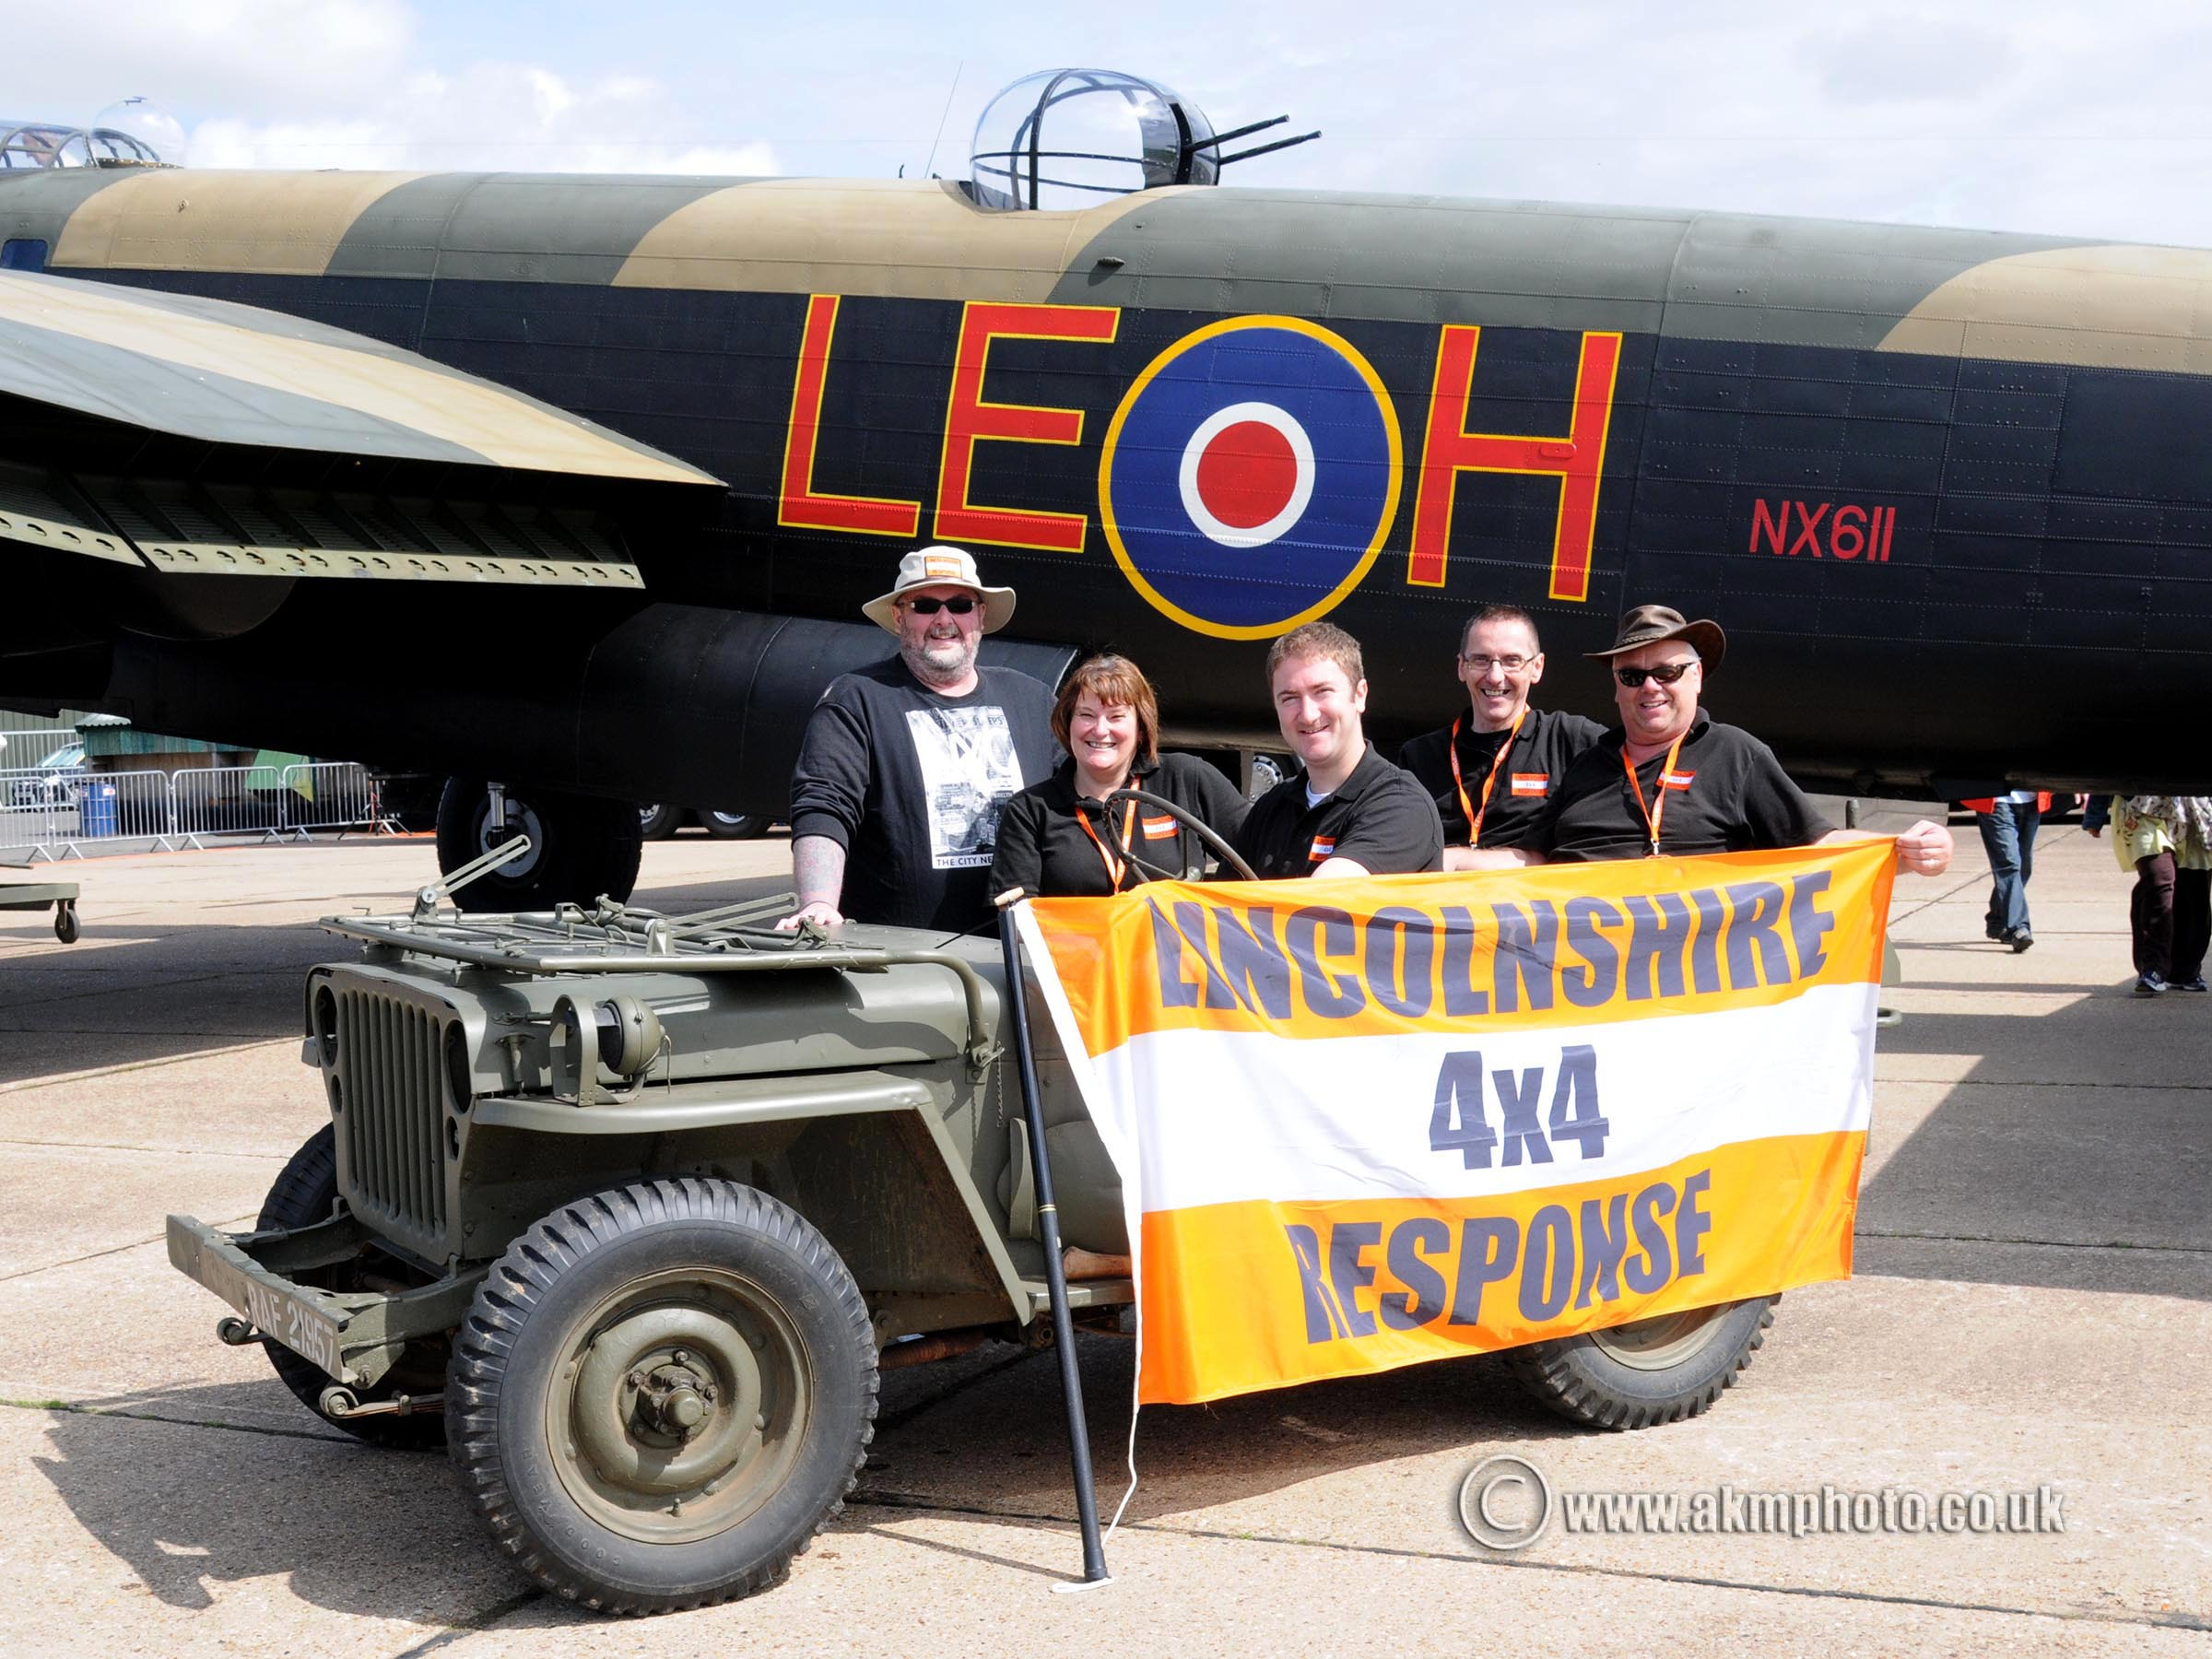 Lincolnshire 4x4 Response at the Lincolnshire Aviation Heritage Center